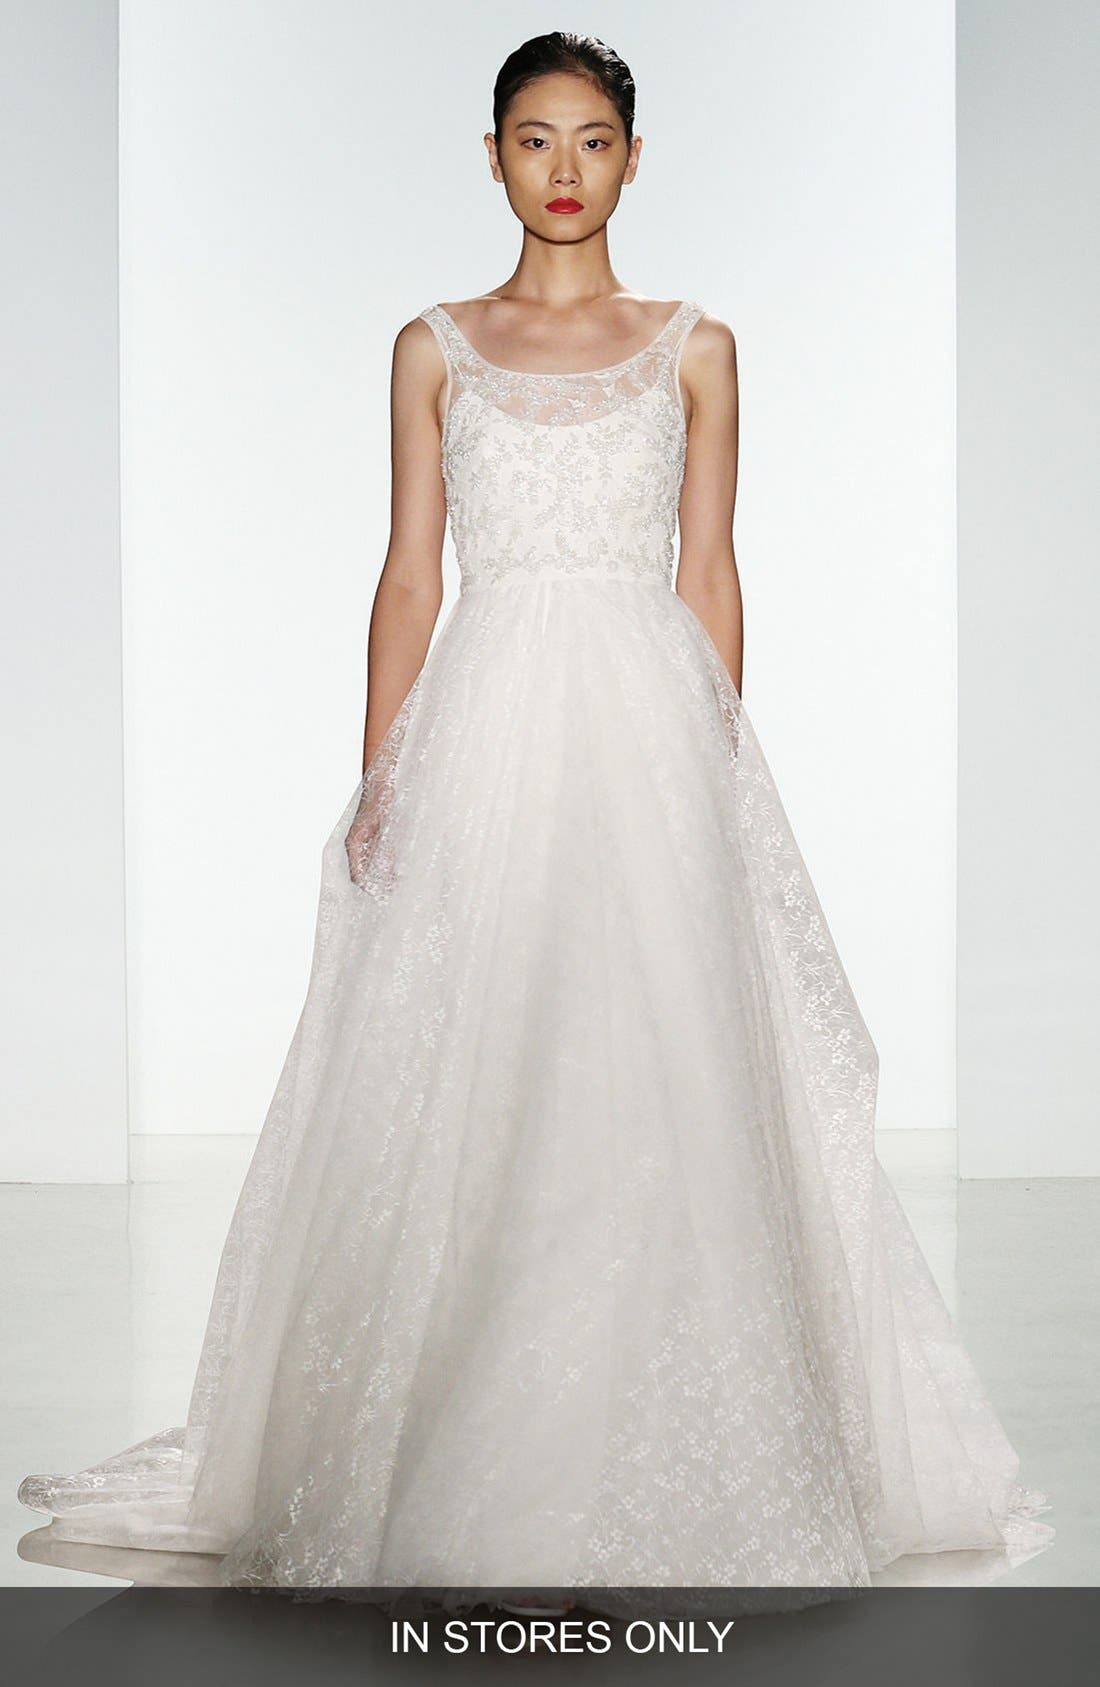 Claire Beaded Chantilly Lace & Floral Tulle Ballgown,                             Main thumbnail 1, color,                             900